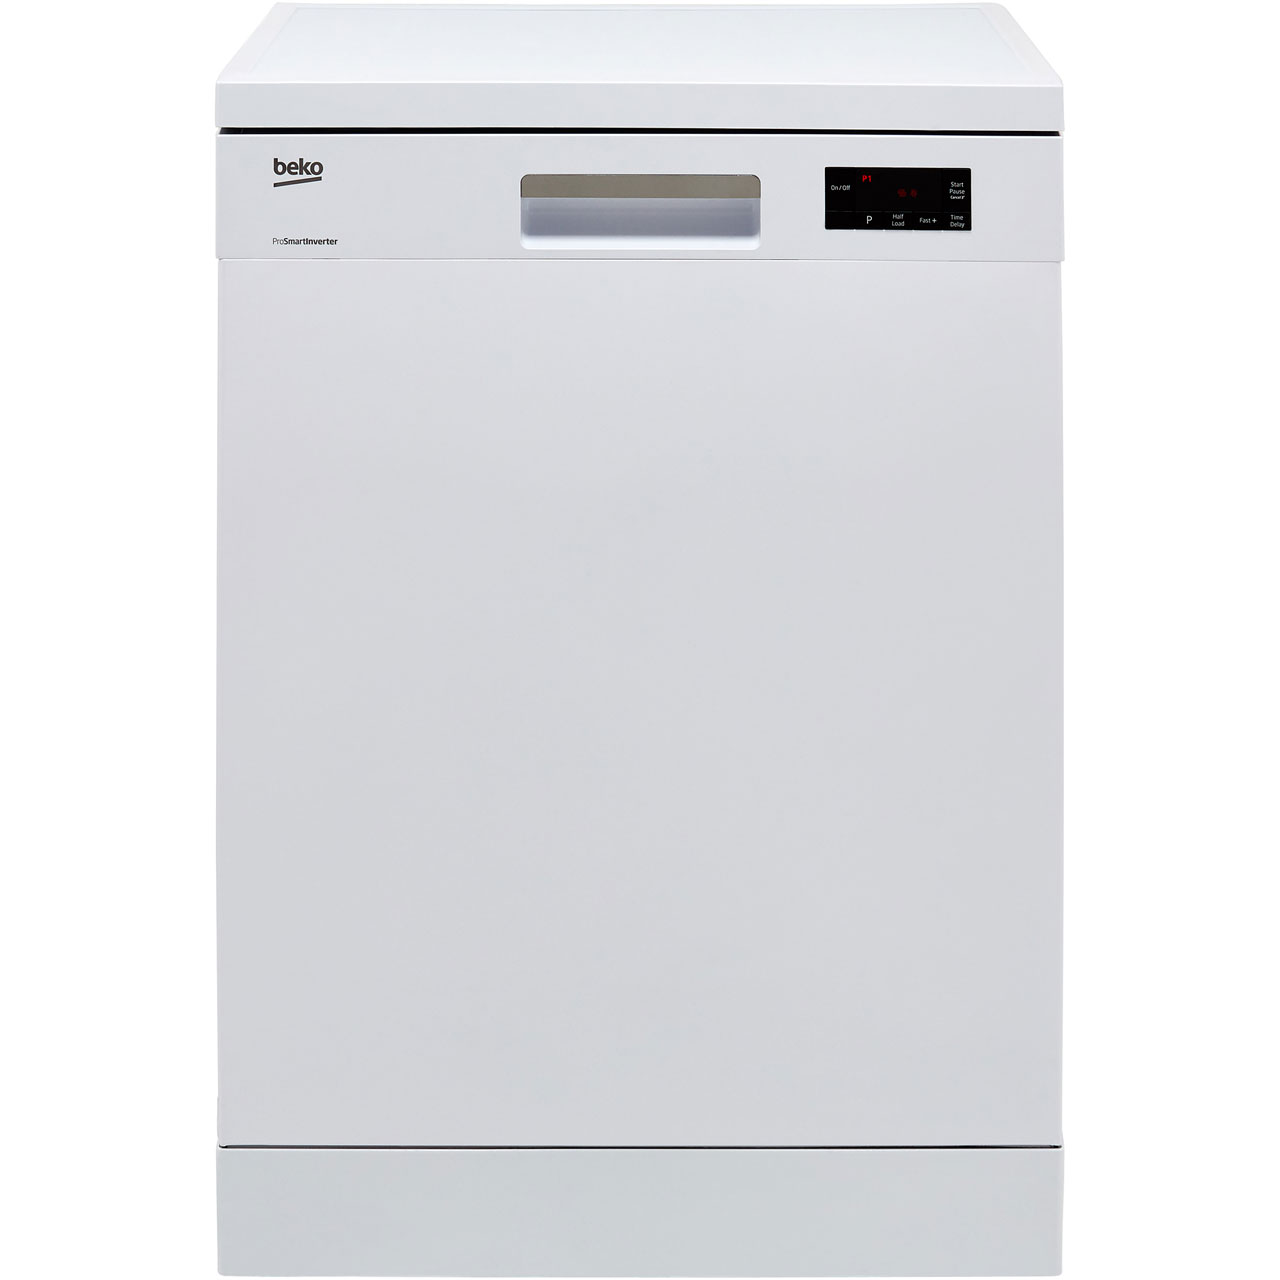 00c9be51ae1 ... Beko DFN16420W Standard Dishwasher - White - A++ Rated - DFN16420W_WH -  1 ...